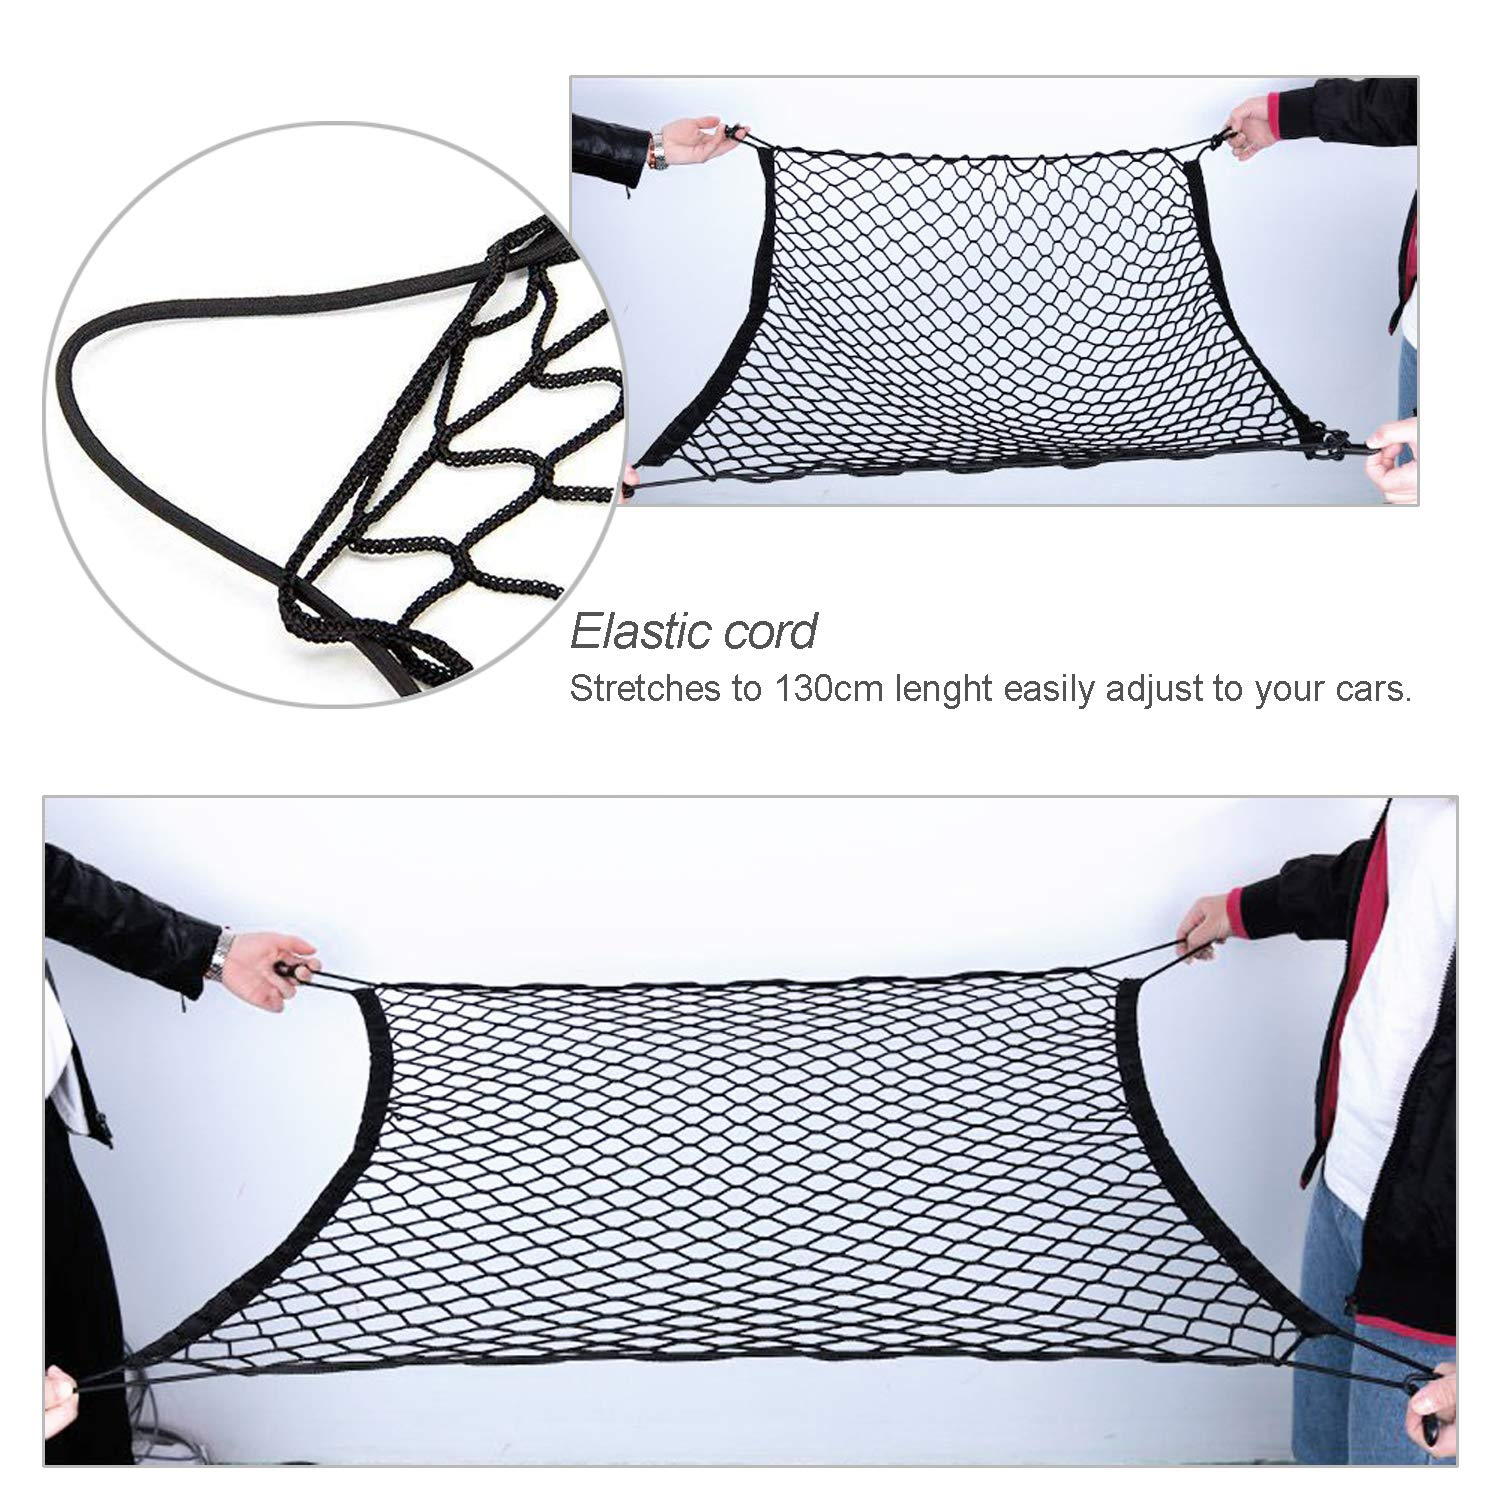 Tusenpy Car Trunk Net with 4 Hooks Flexible Elastic Nylon Rear Cargo Storage Organizer for Most Types of Cars Cargo Baggage Fixed Net 100 * 100cm